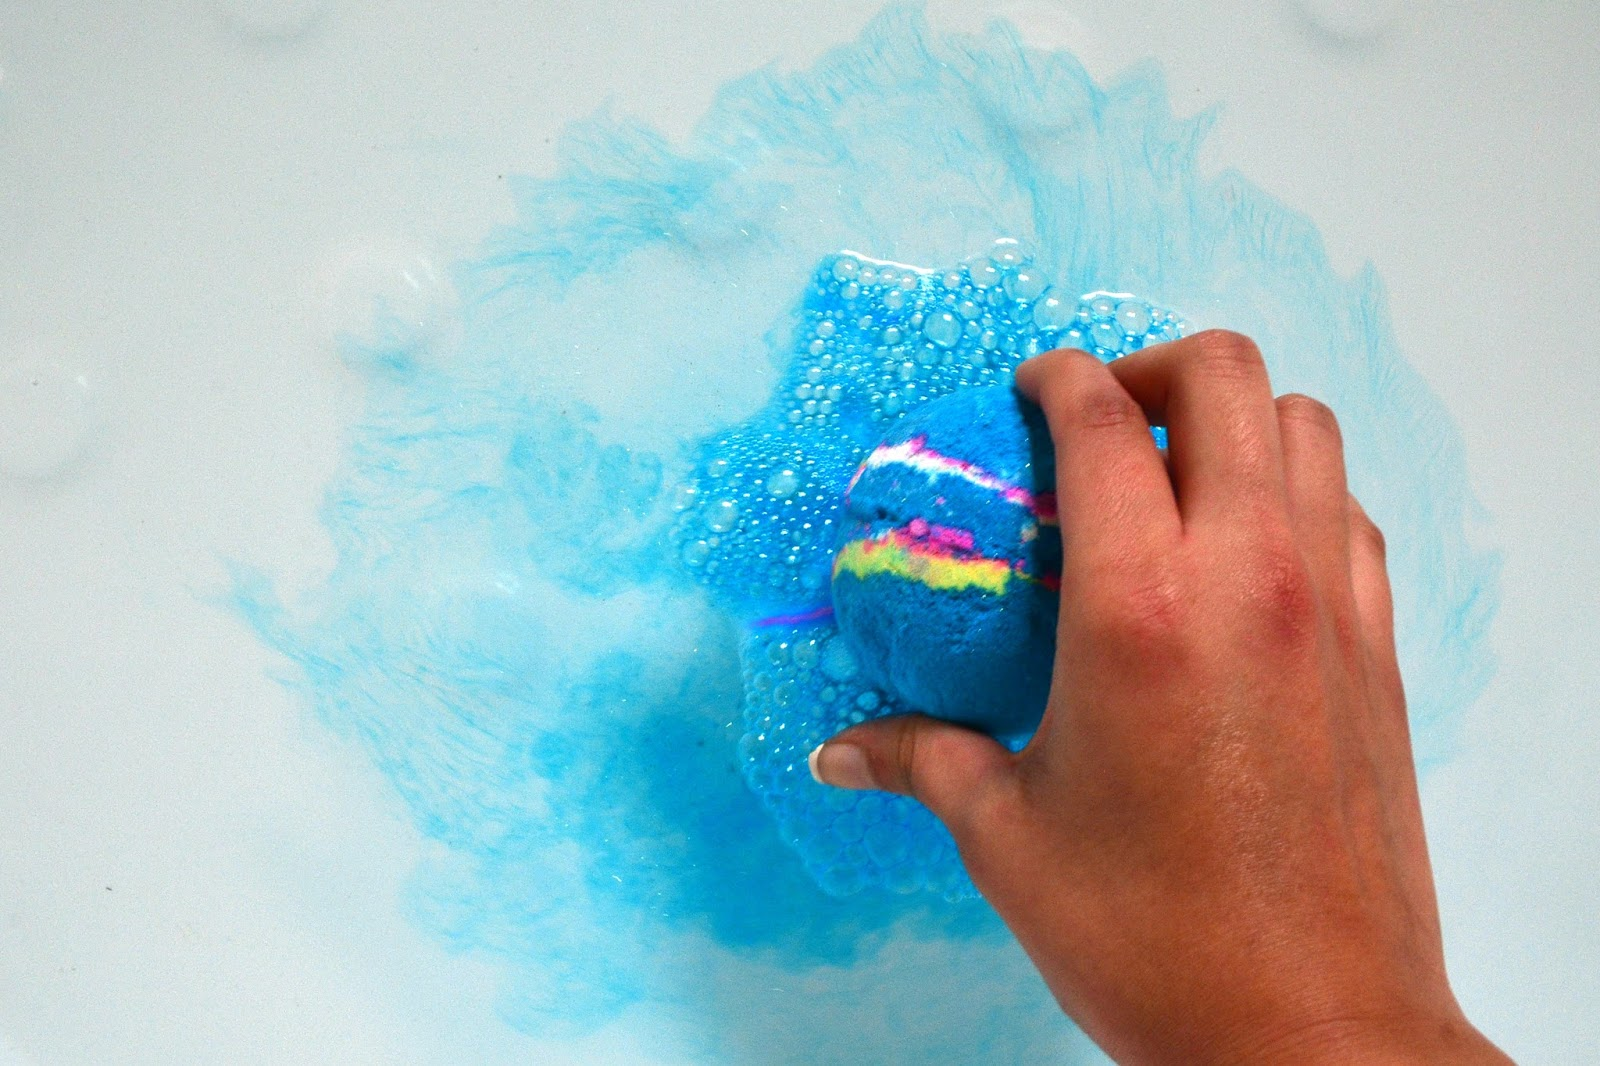 Superb The Moment You Place The Bath Bomb Into The Water, The Blue Disperses  Across The Water. While Most Of It Is Blue, You Get Small Swirls Of White,  ...